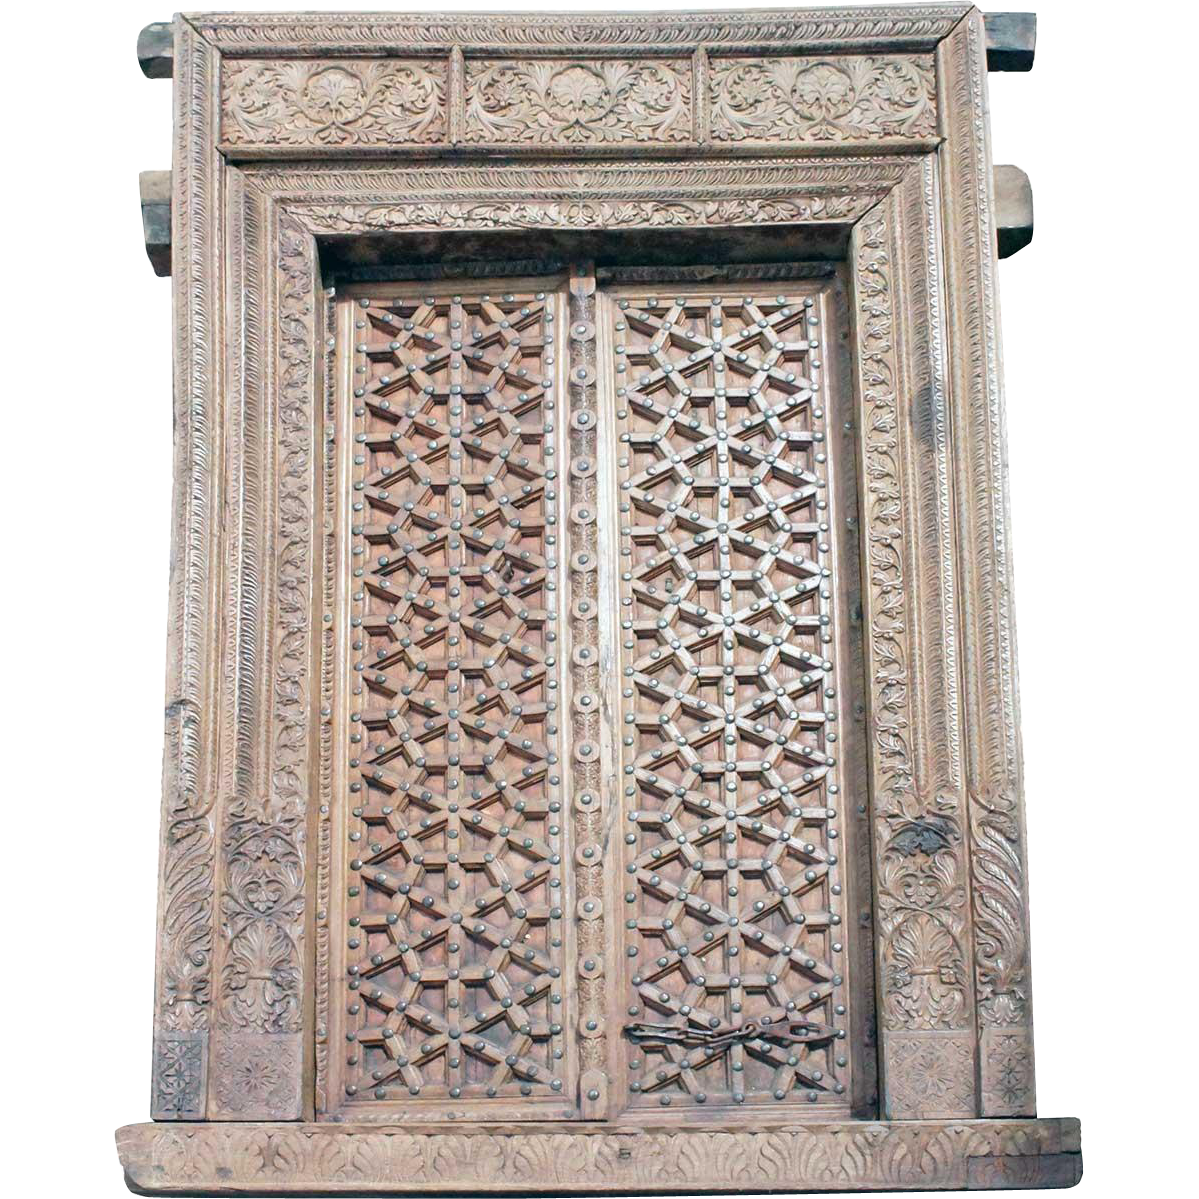 Indian Rajasthani Teak Double Doorway and Frame